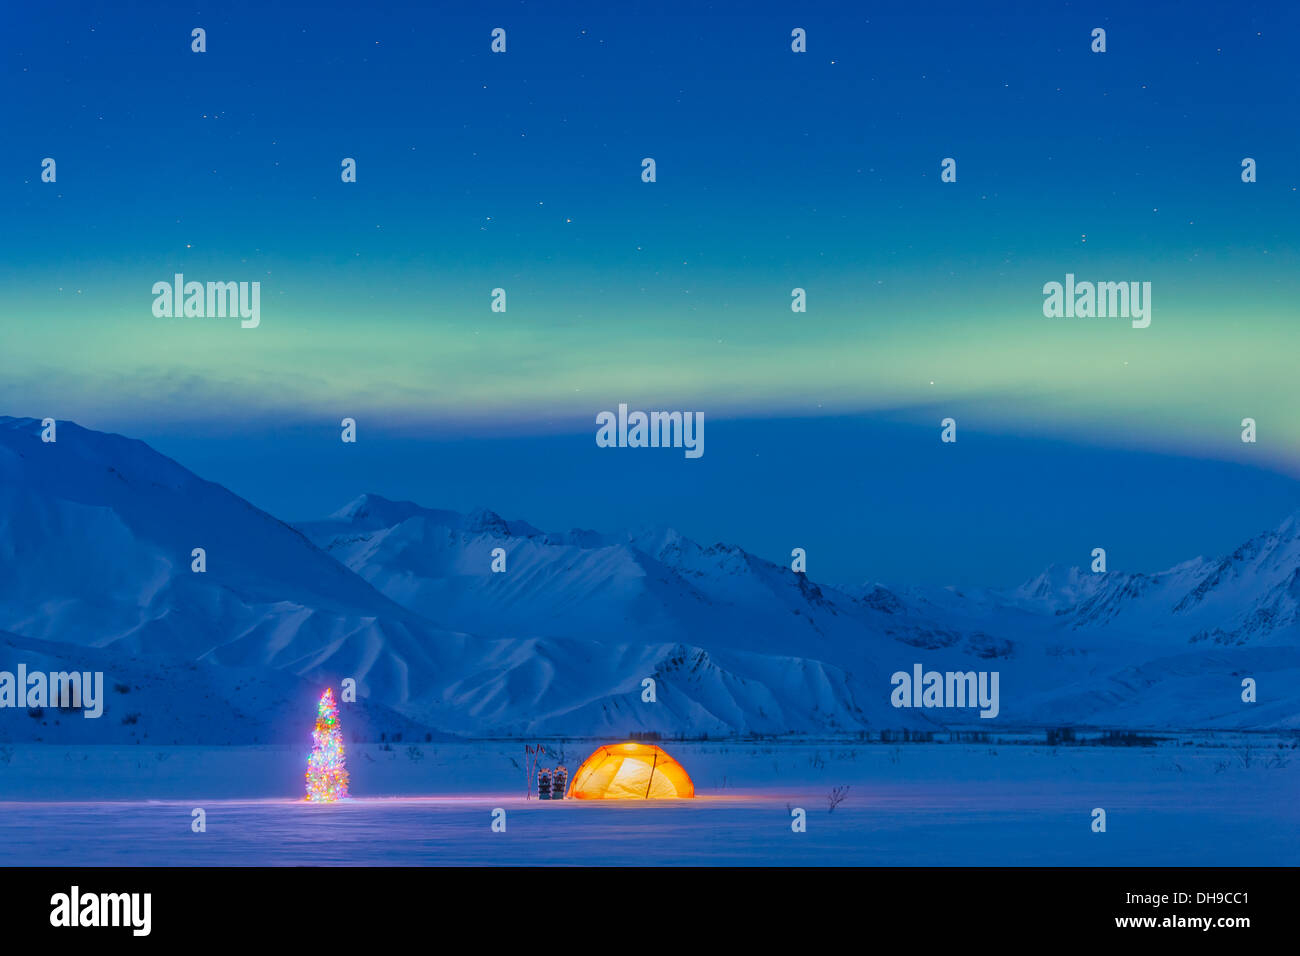 Northern Lights Glow In The Sky Above A Backpacking Tent And Lit Christmas Tree At Twilight Alaska Range Isabel Pass  sc 1 st  Alamy & Northern Lights Glow In The Sky Above A Backpacking Tent And Lit ...